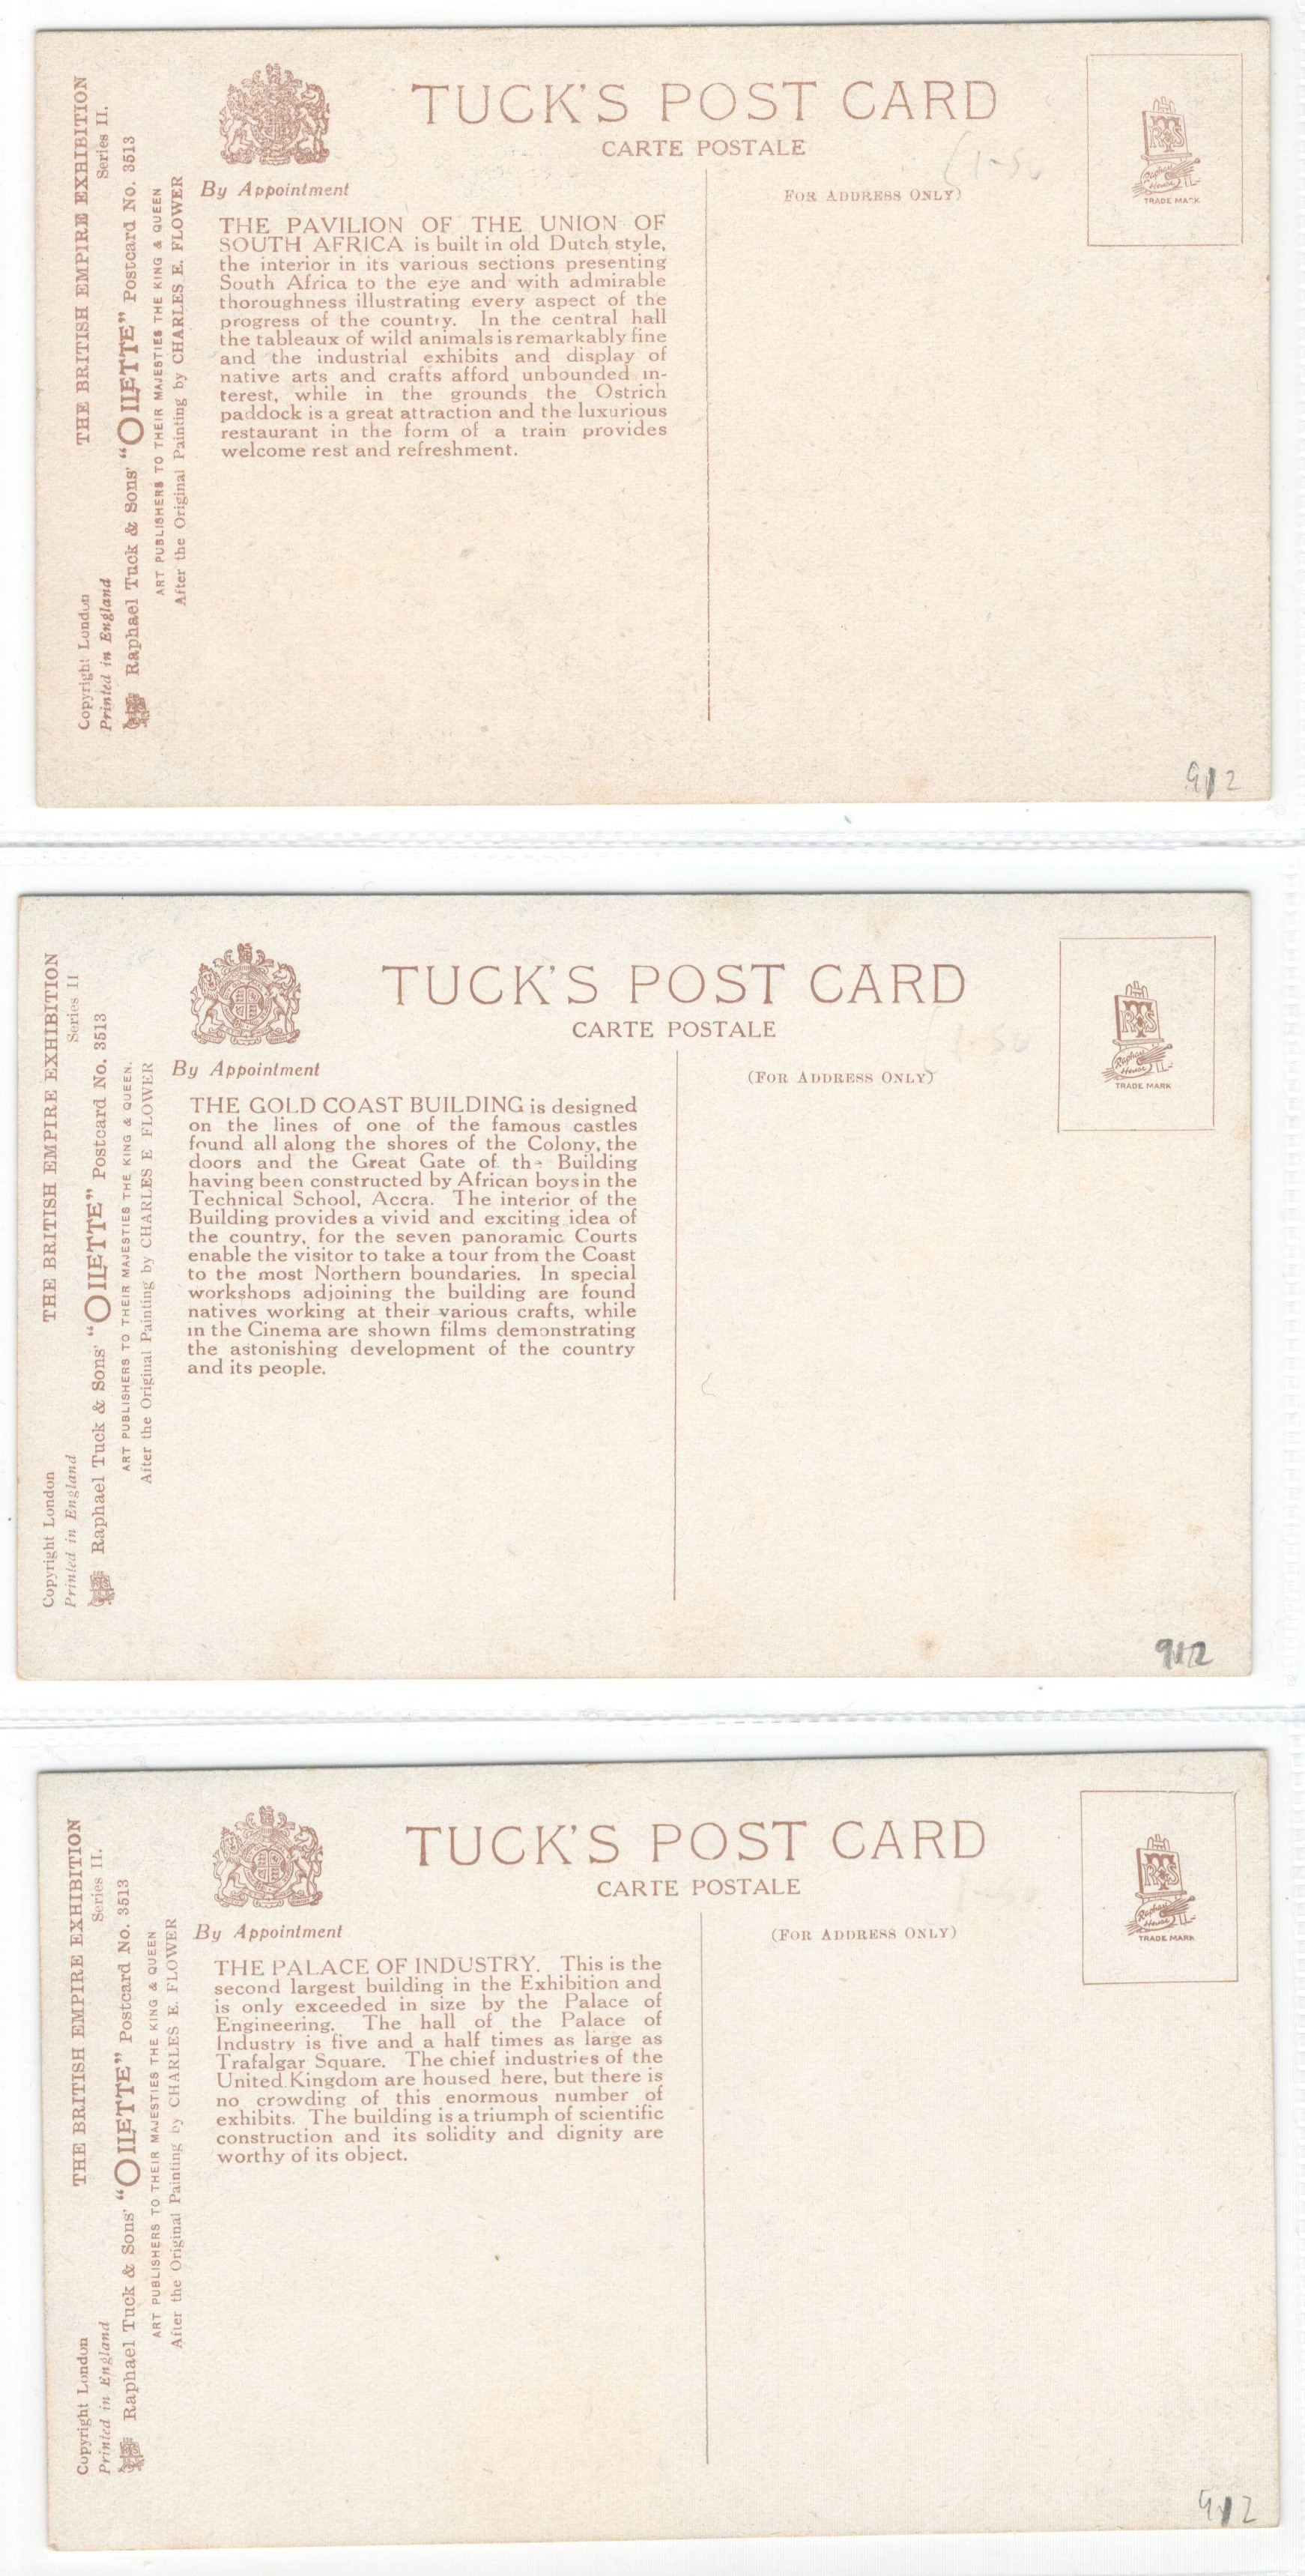 SET OF SIX RAPHAEL TUCK POSTCARDS - THE BRITISH EMPIRE EXHIBITION SERIES II - 3513 - Image 3 of 3